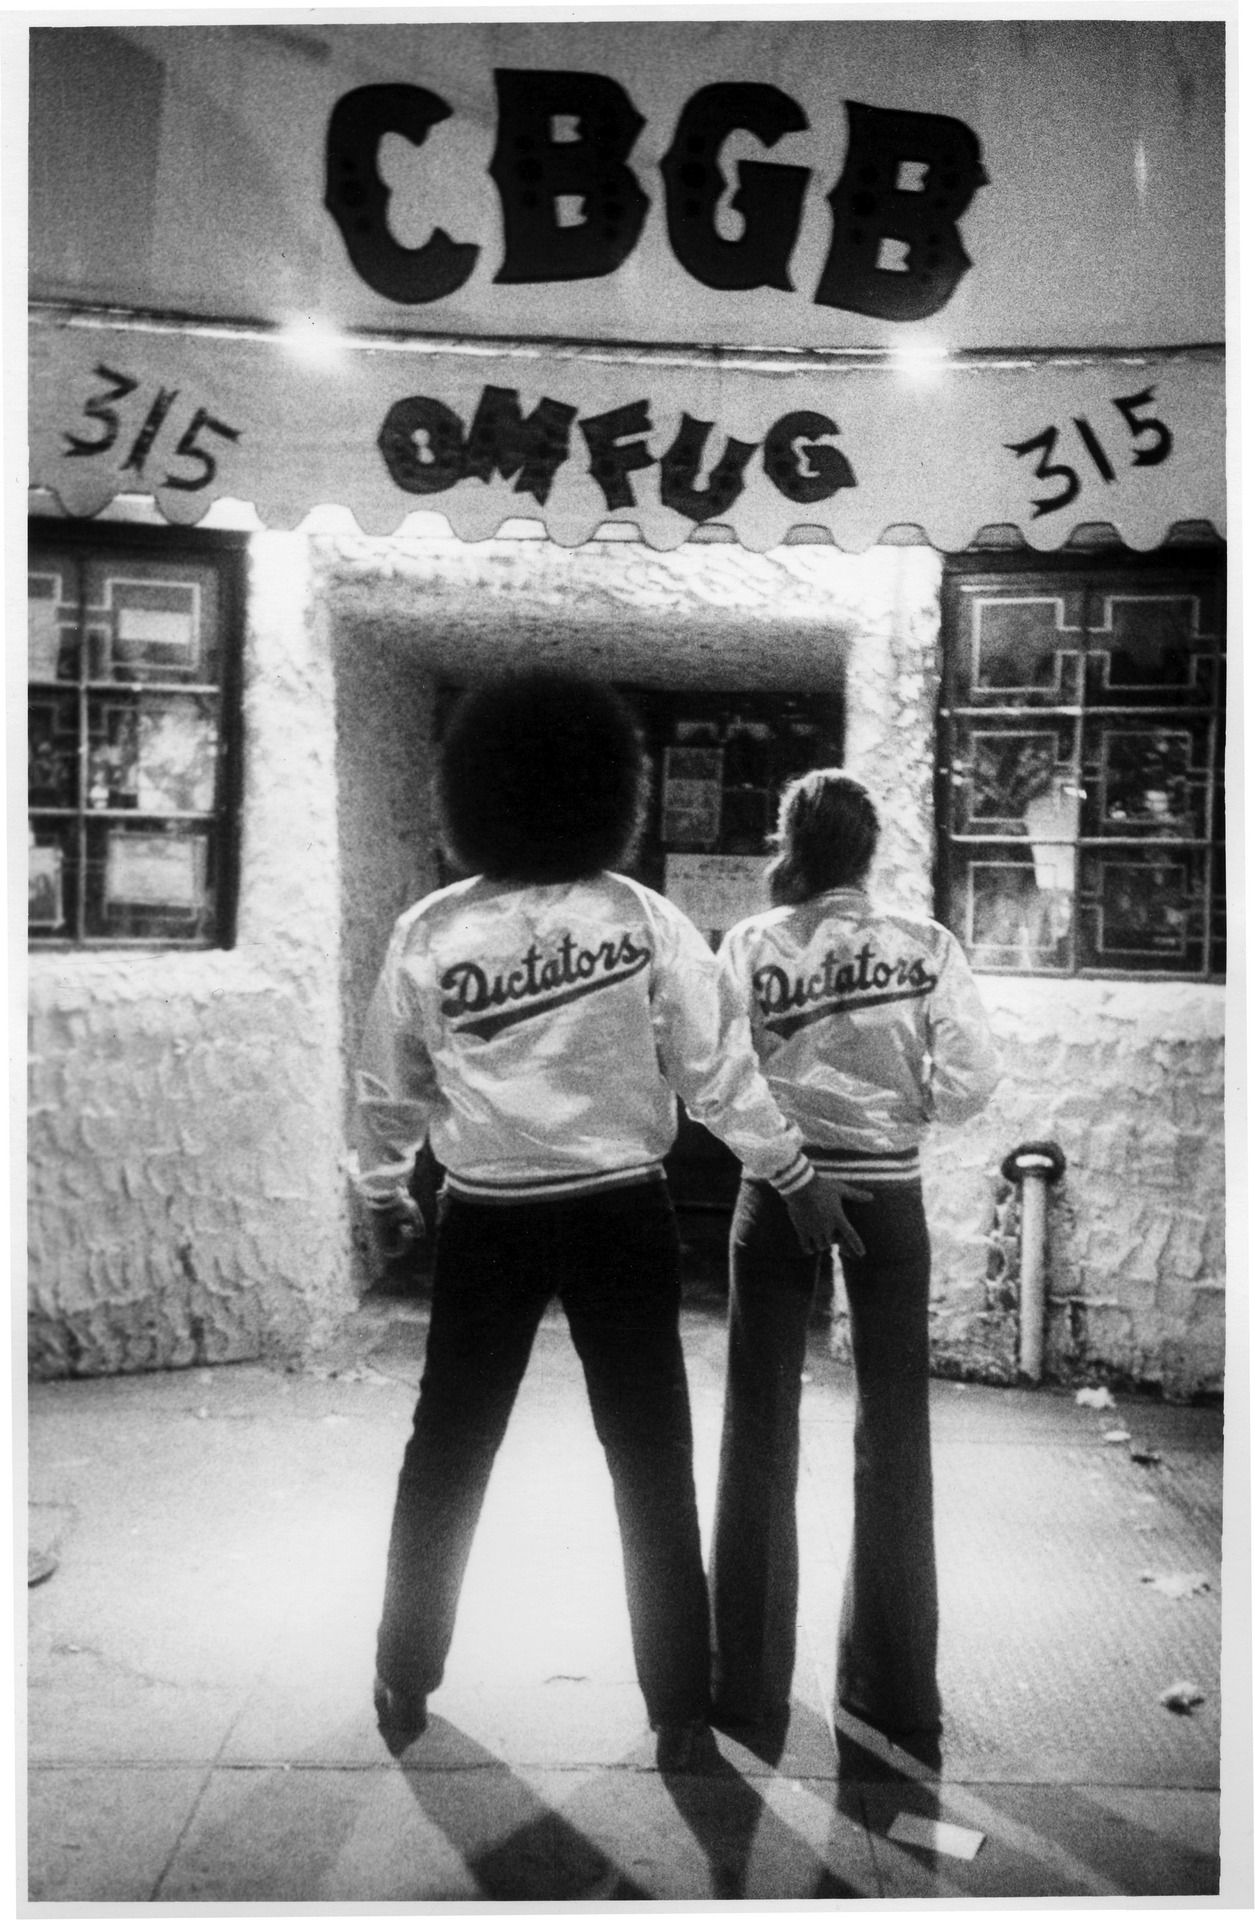 Richard Manitoba fromThe Dictators and his girlfriend,CBGB's, New York City, 1976,by Godlis